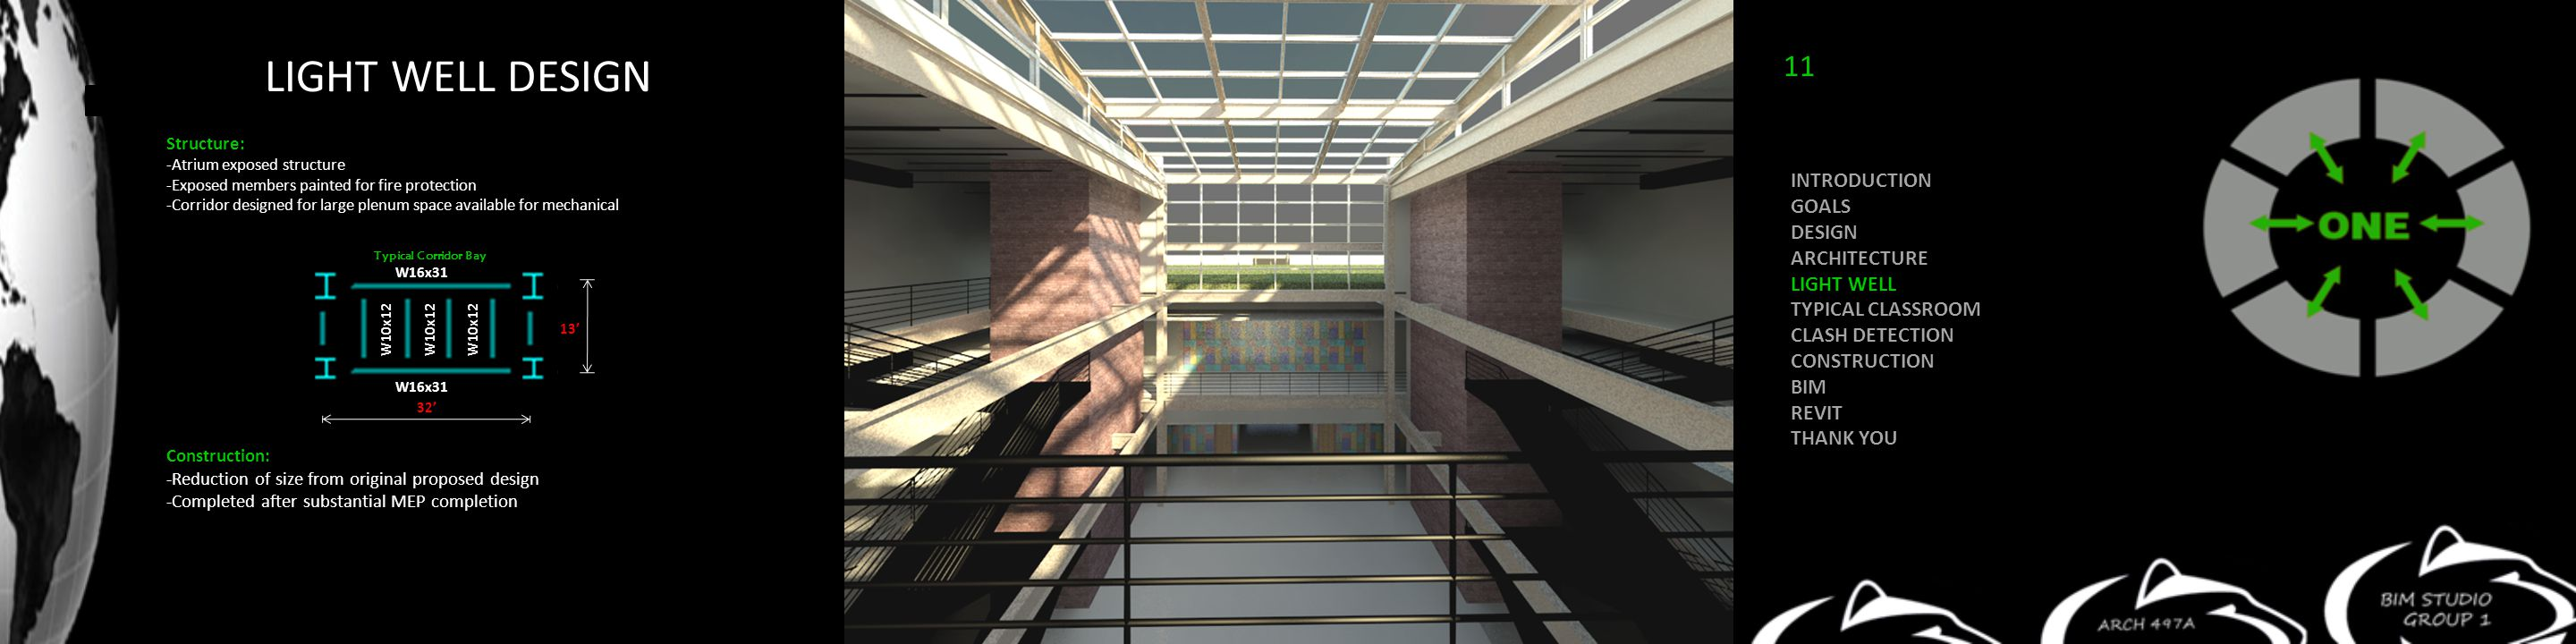 LIGHT WELL DESIGN Structure: -Atrium exposed structure -Exposed members painted for fire protection -Corridor designed for large plenum space availabl